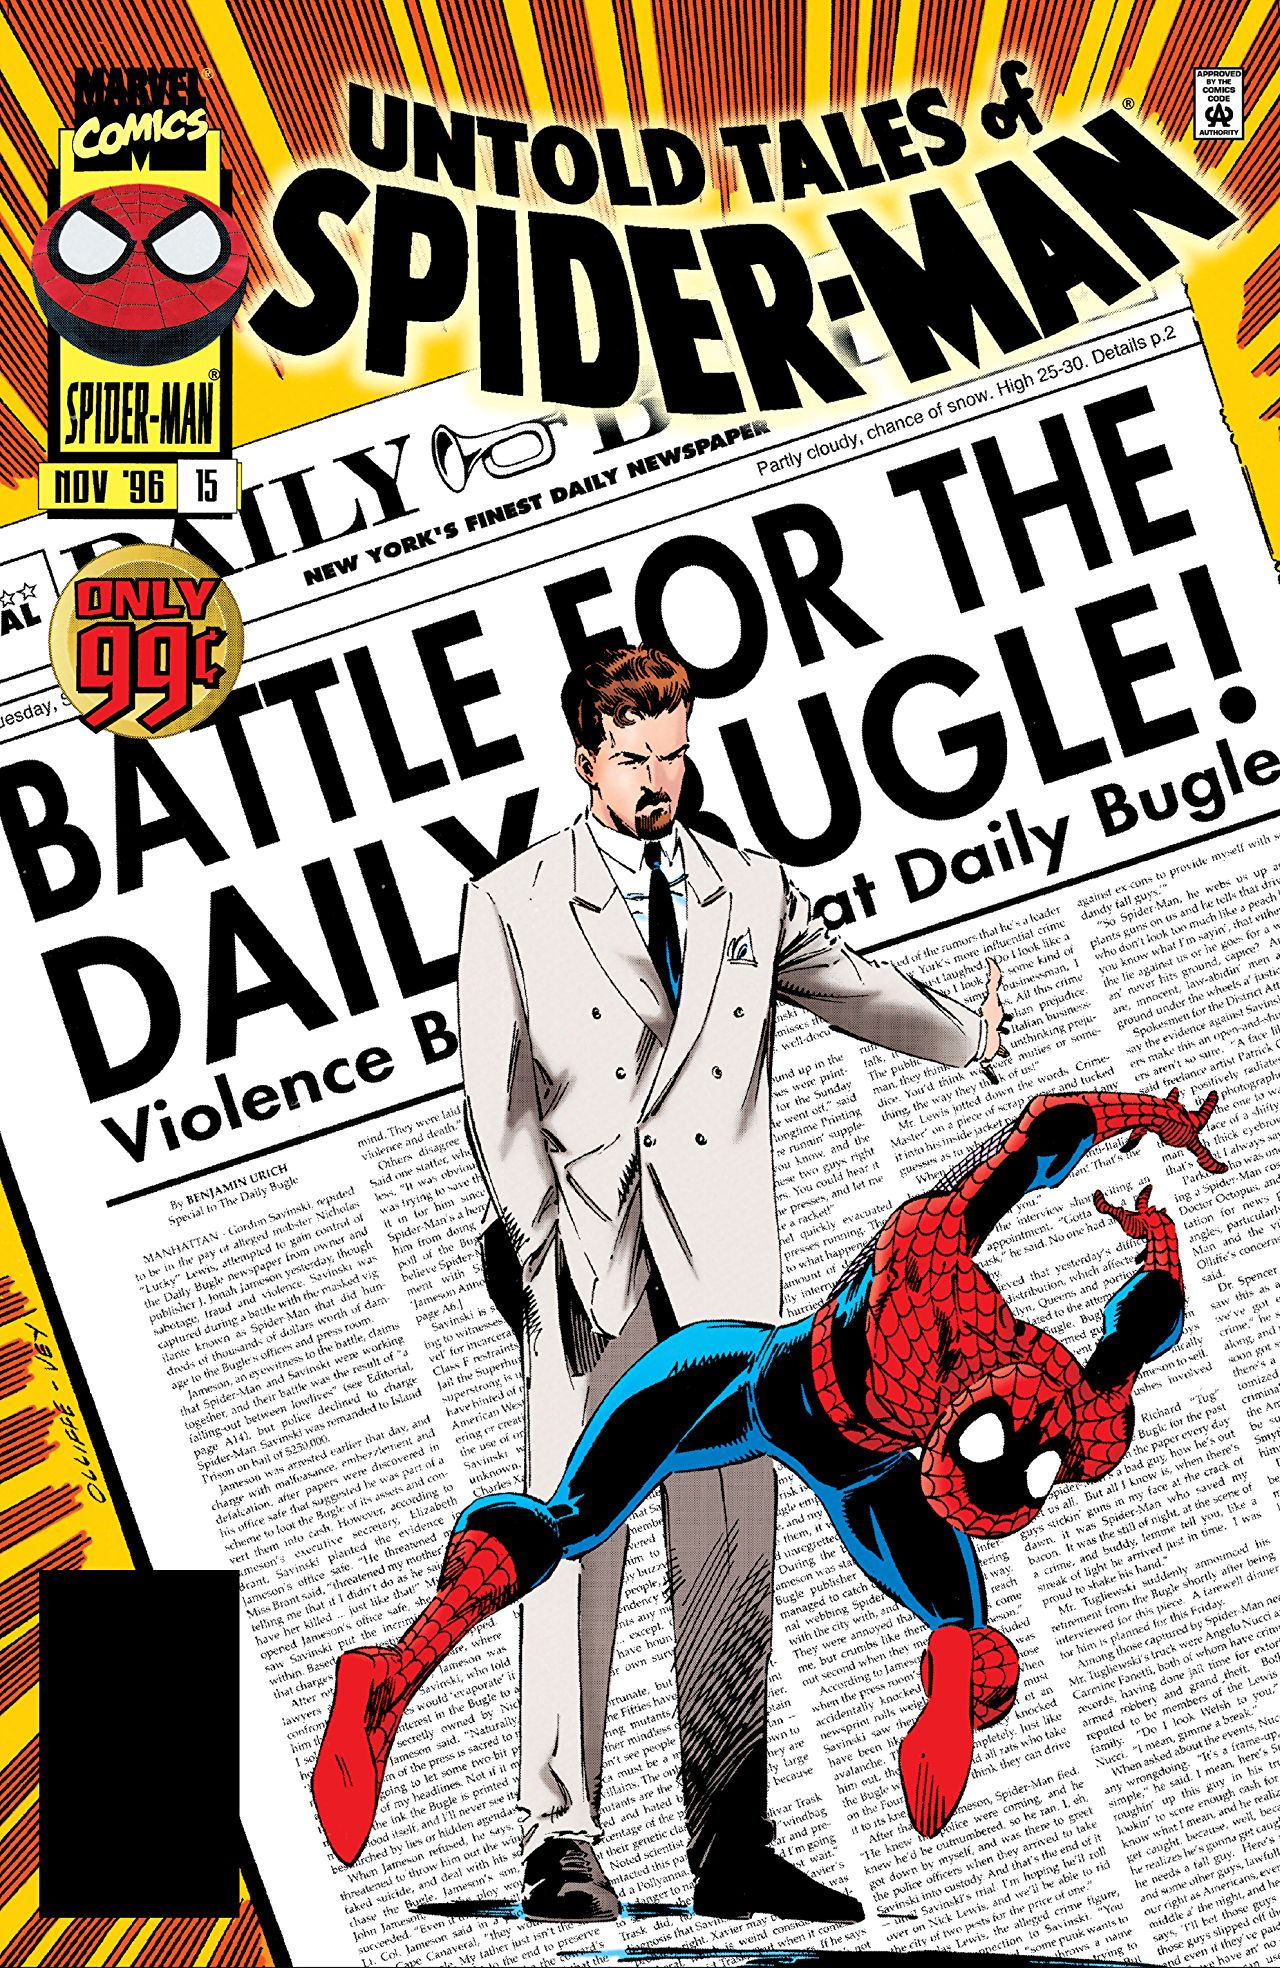 Daily Bugle for Spiderman Peter Parker 1//6 Scale Newspaper 3 Pack